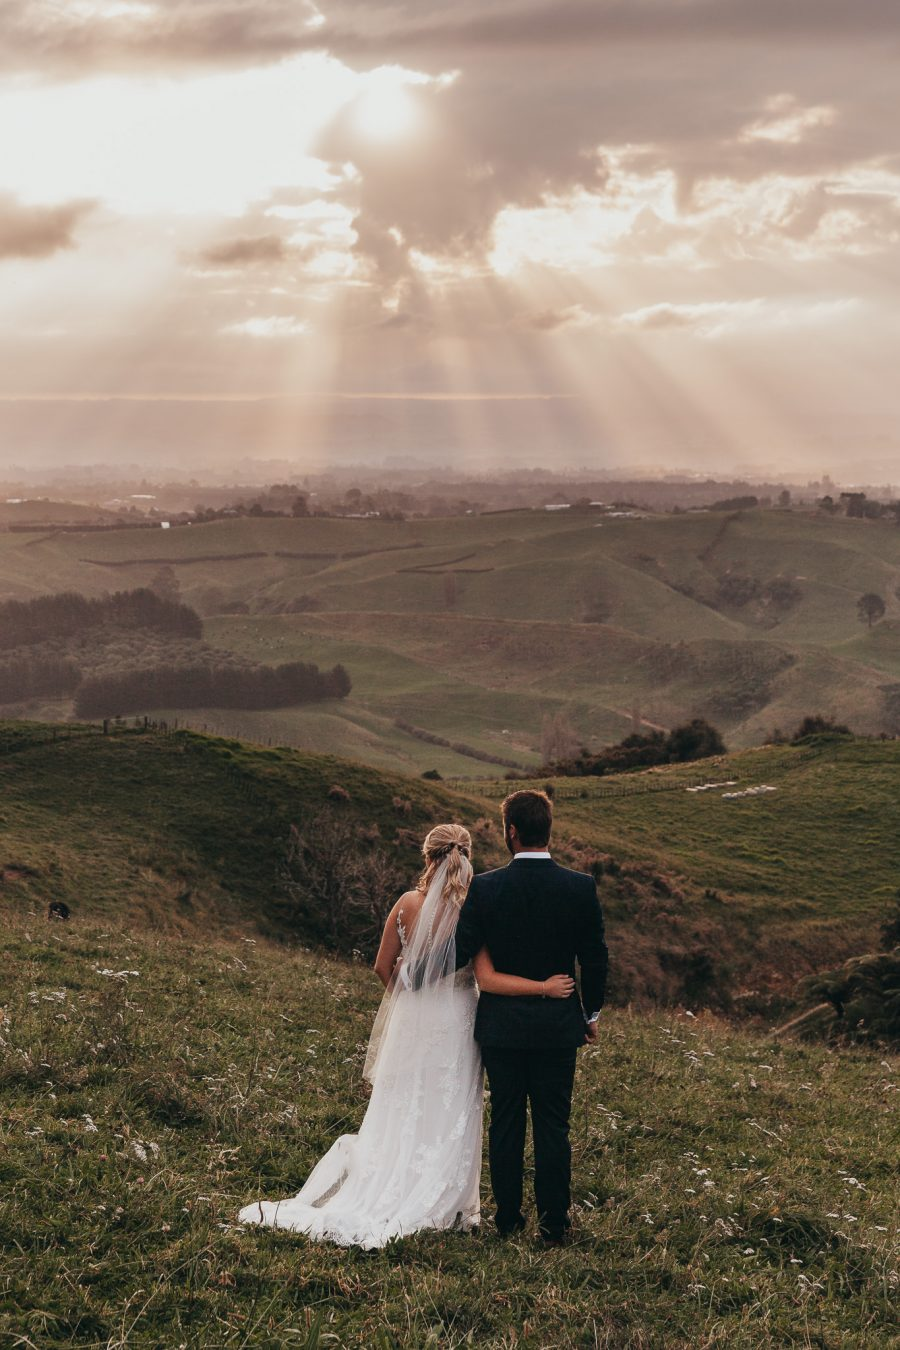 Soaking up the views on their wedding day